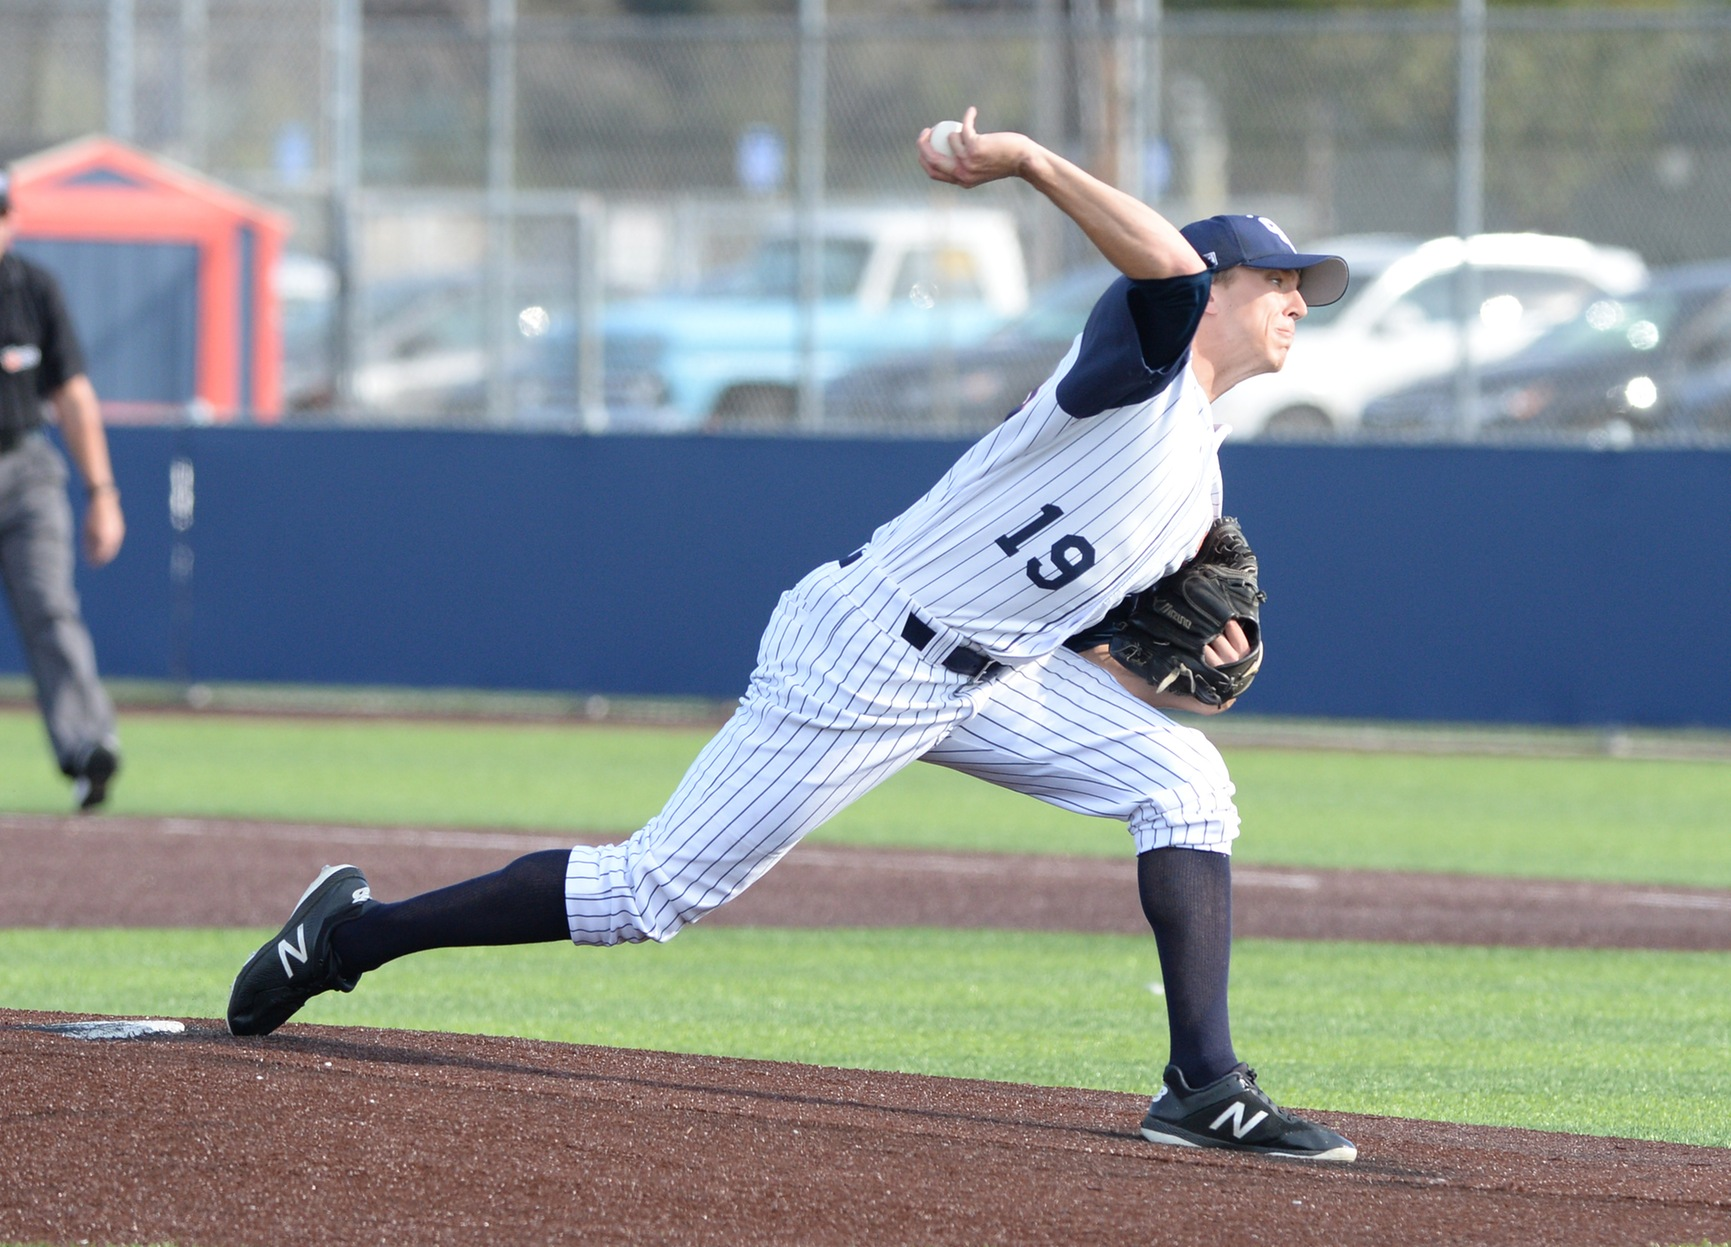 Pirates topple Eagles, advance to Super Regionals